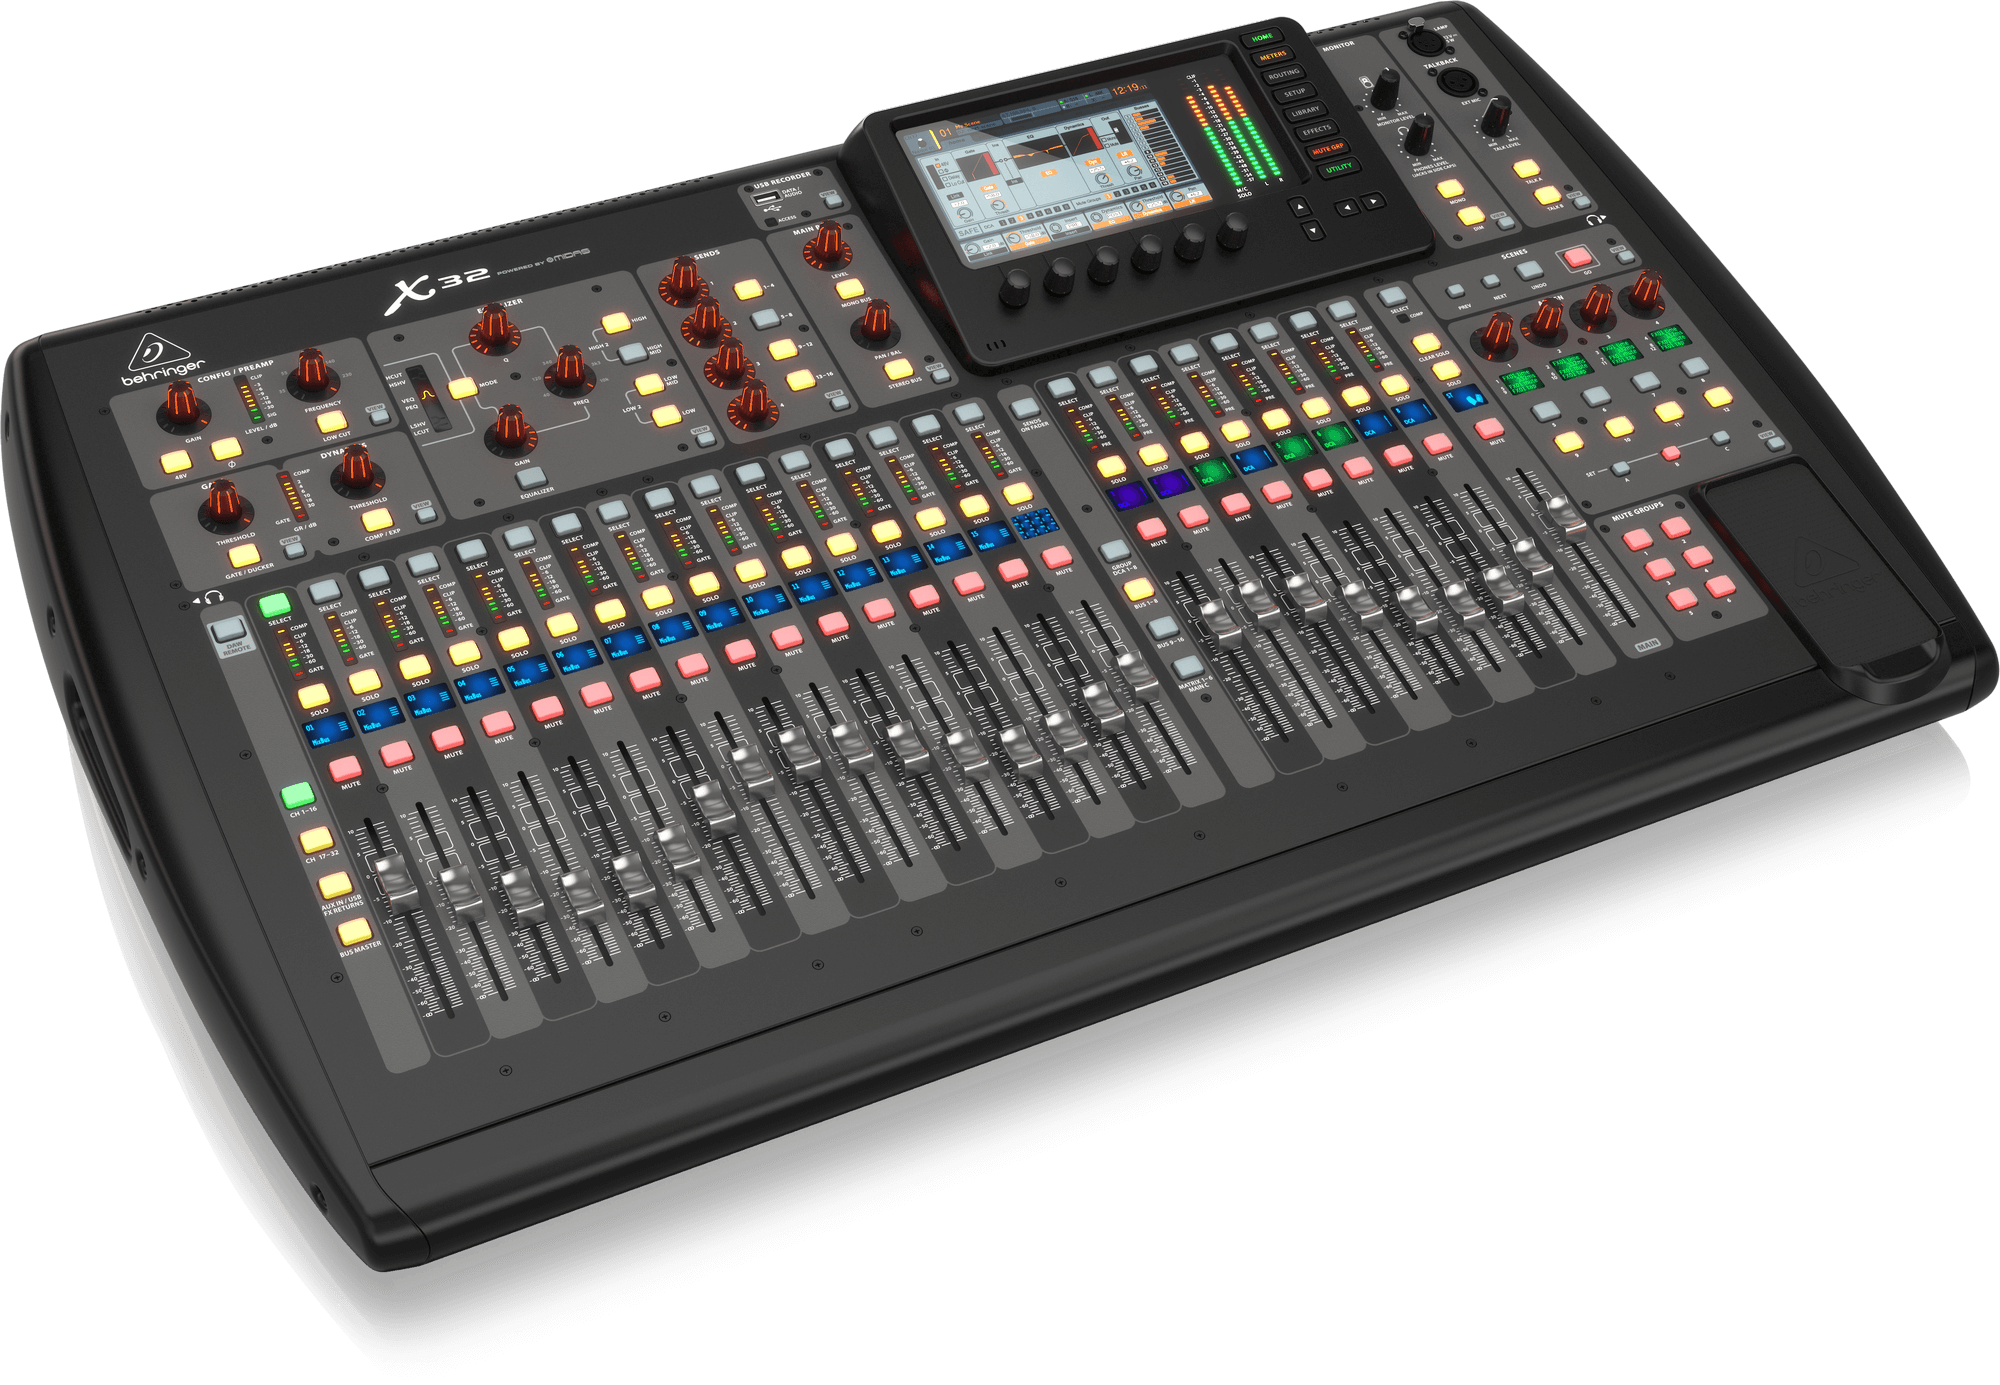 behringer-x32-40-input-25-bus-digital-mixing-console-with-32-programmable-midas-preamps MAIN